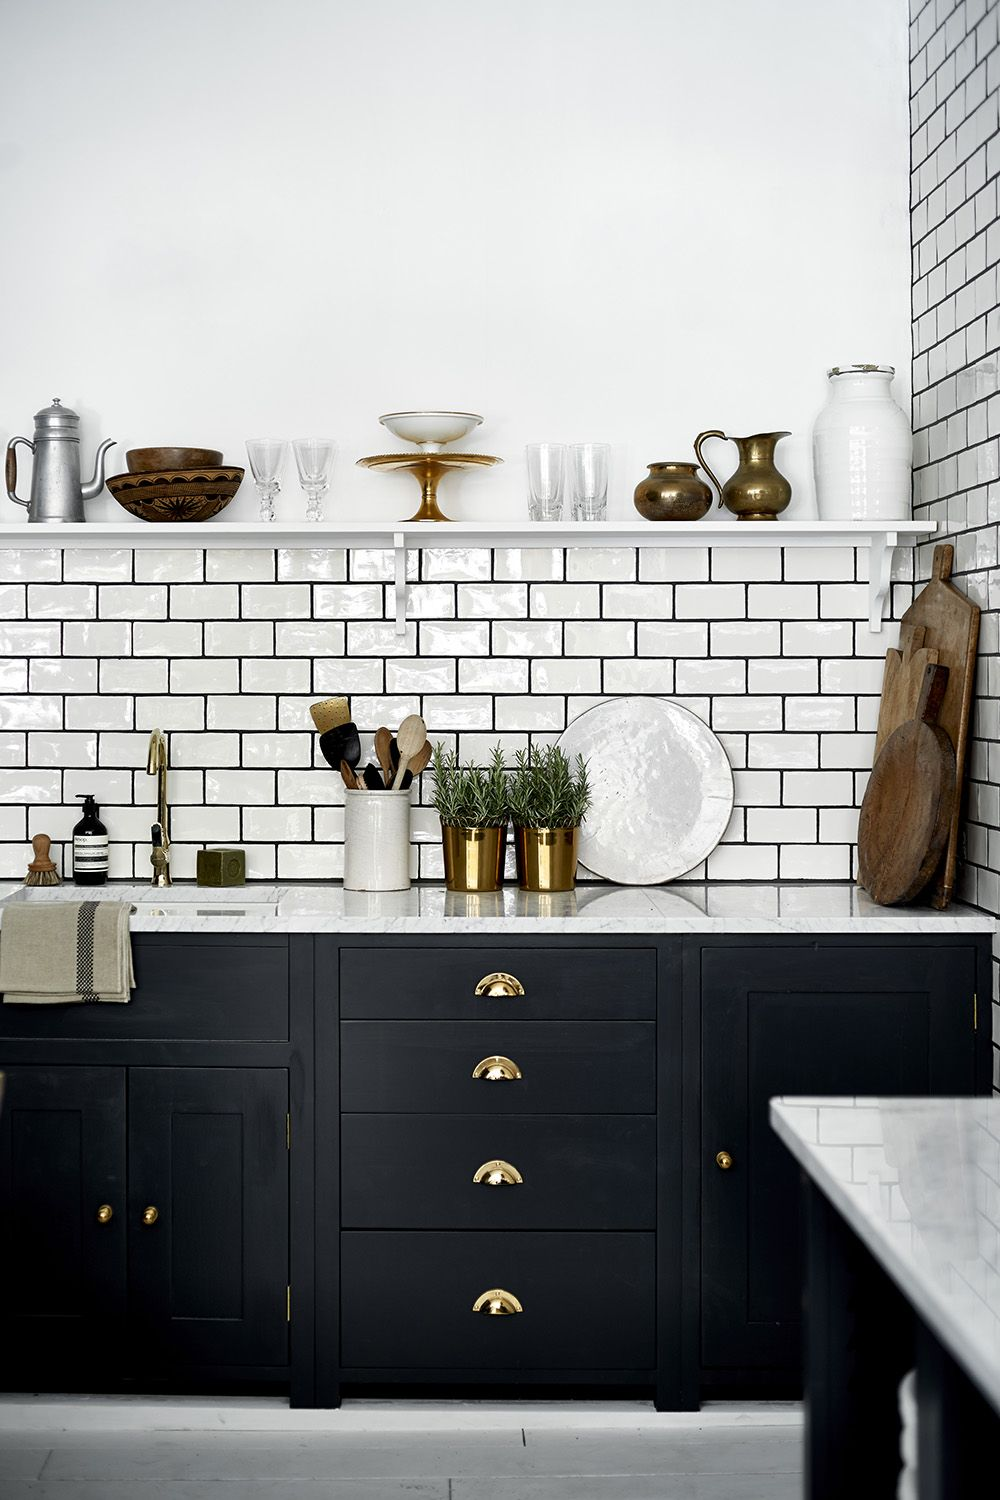 tiles backsplash style back image inspiring are for bathroom designs kitchen in tile fabulous home remarkable subway